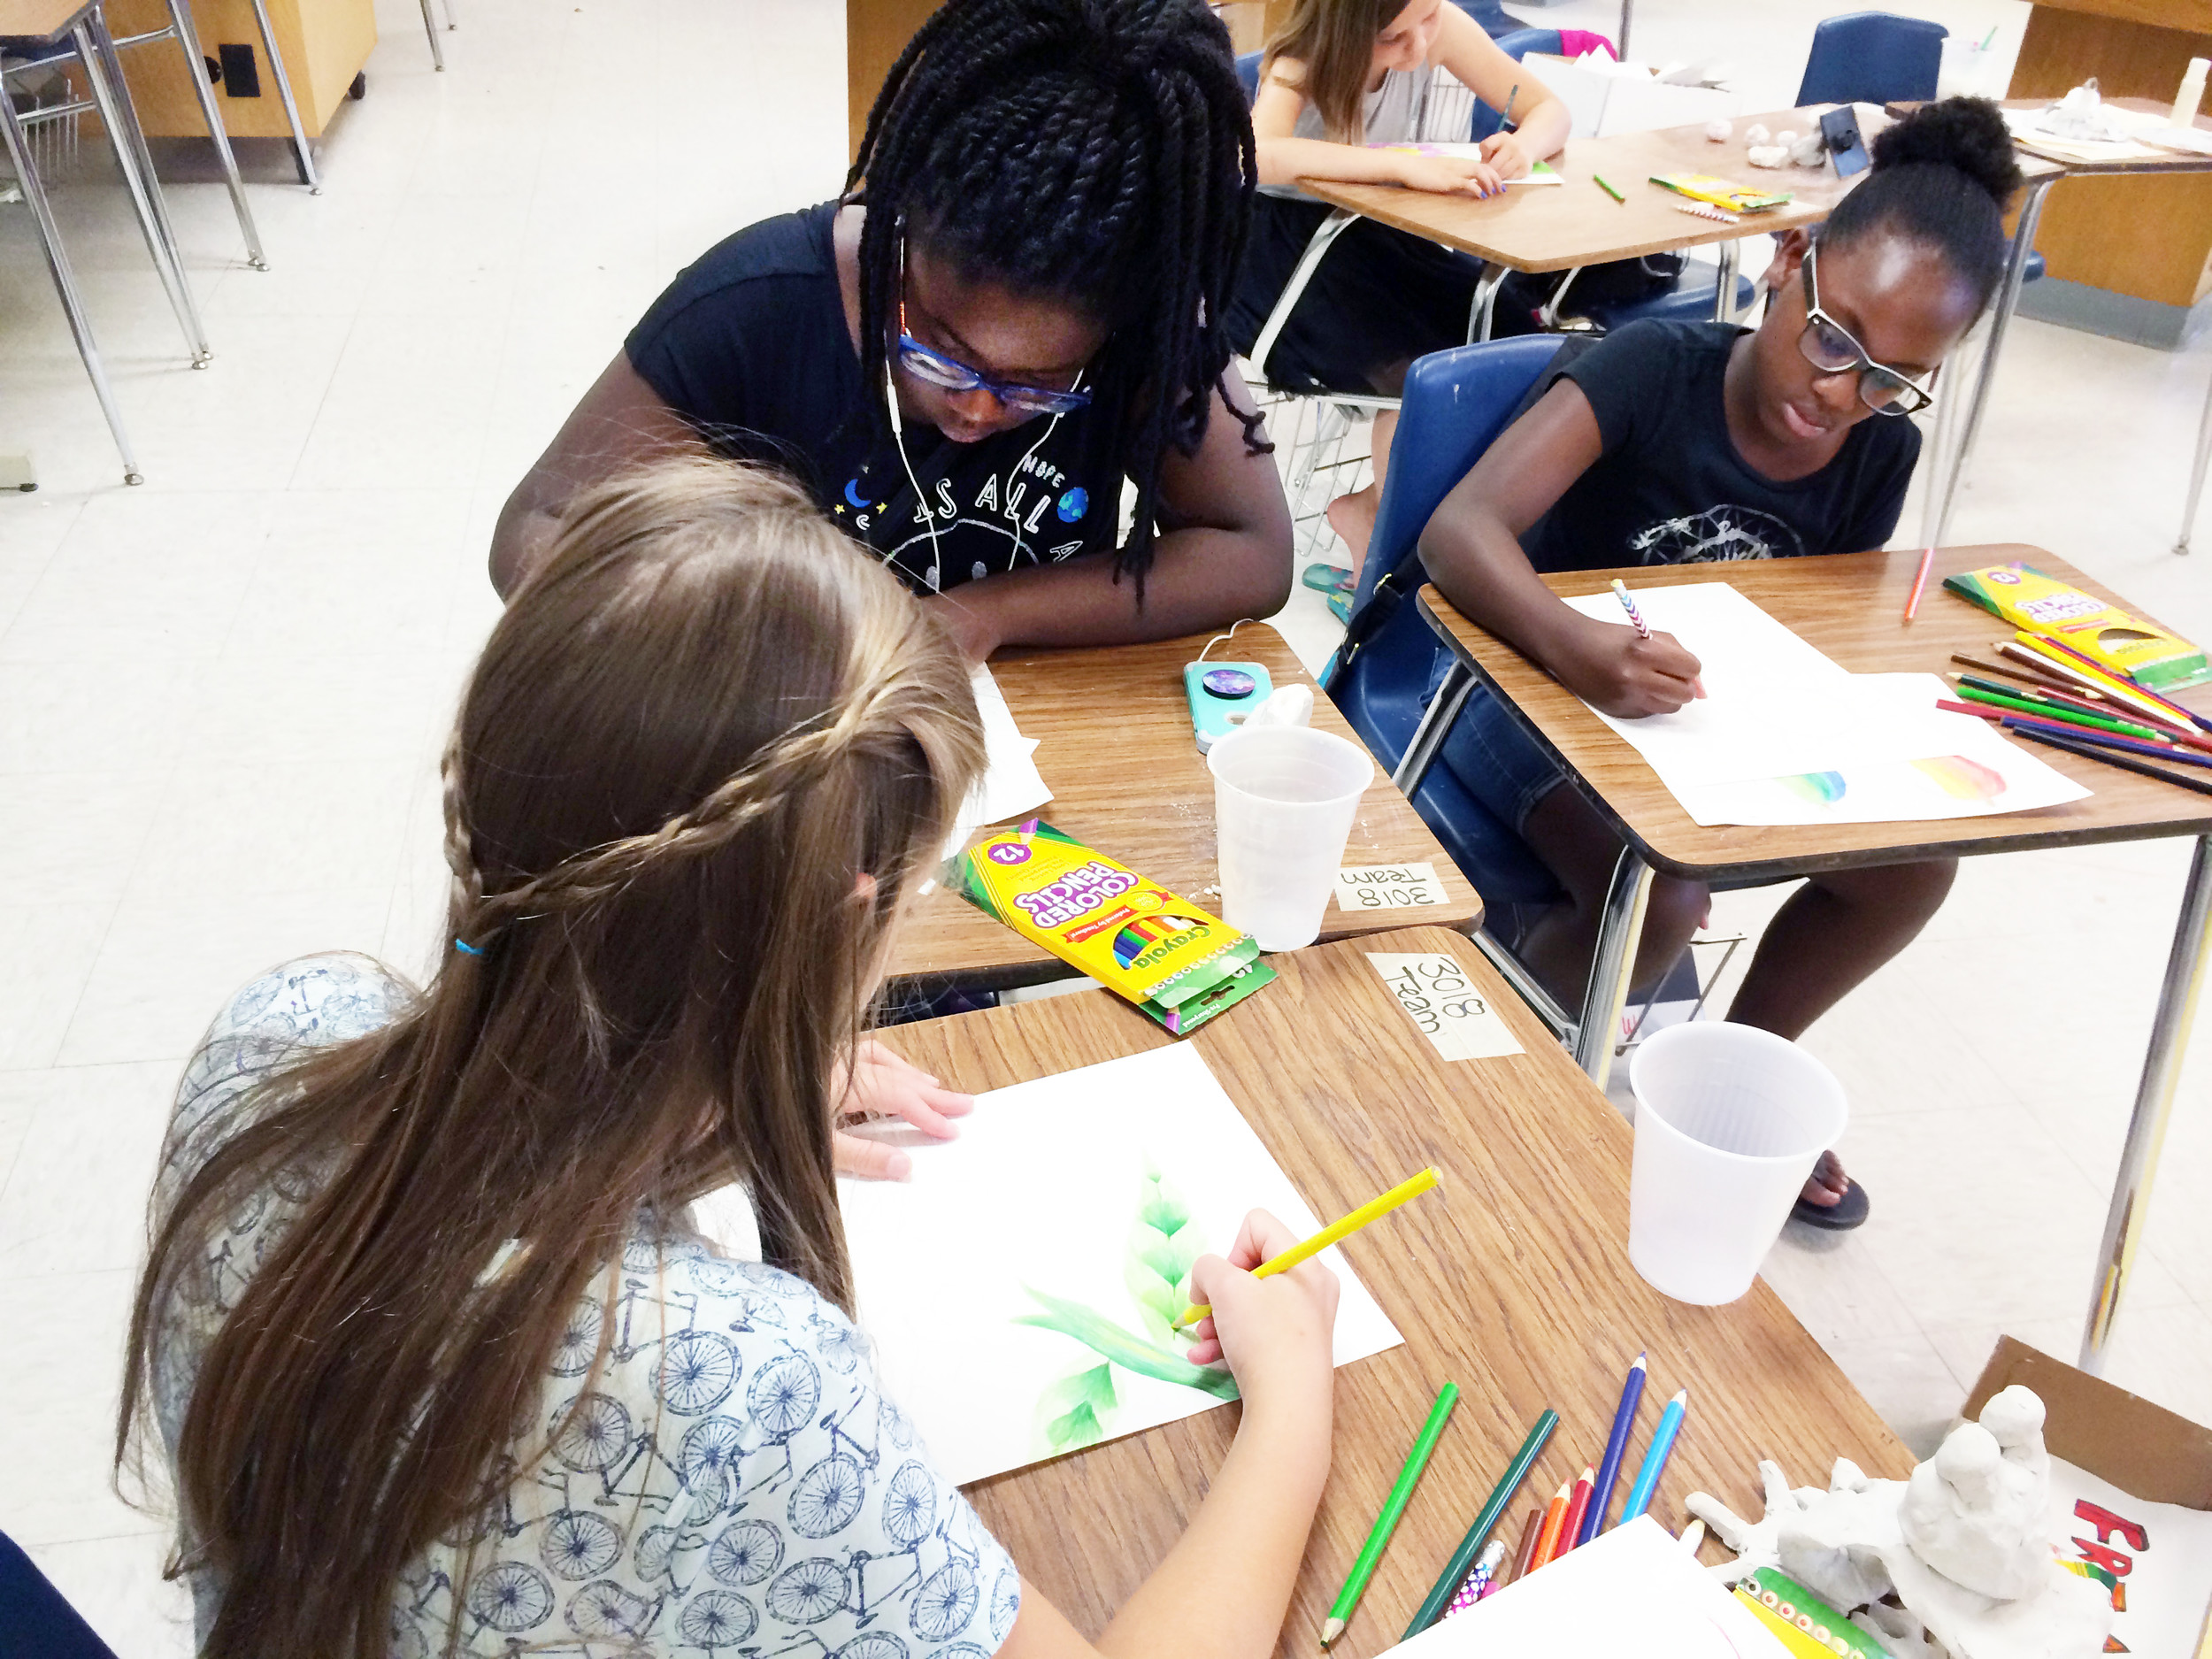 From left, Leah Page and Ava Breland, both rising fifth-graders at Millwood Elementary School, and Mariah Williams, a rising fourth-grader, also attending Millwood, work on their art inspired by the Beatles in Laura Cardello's art class.